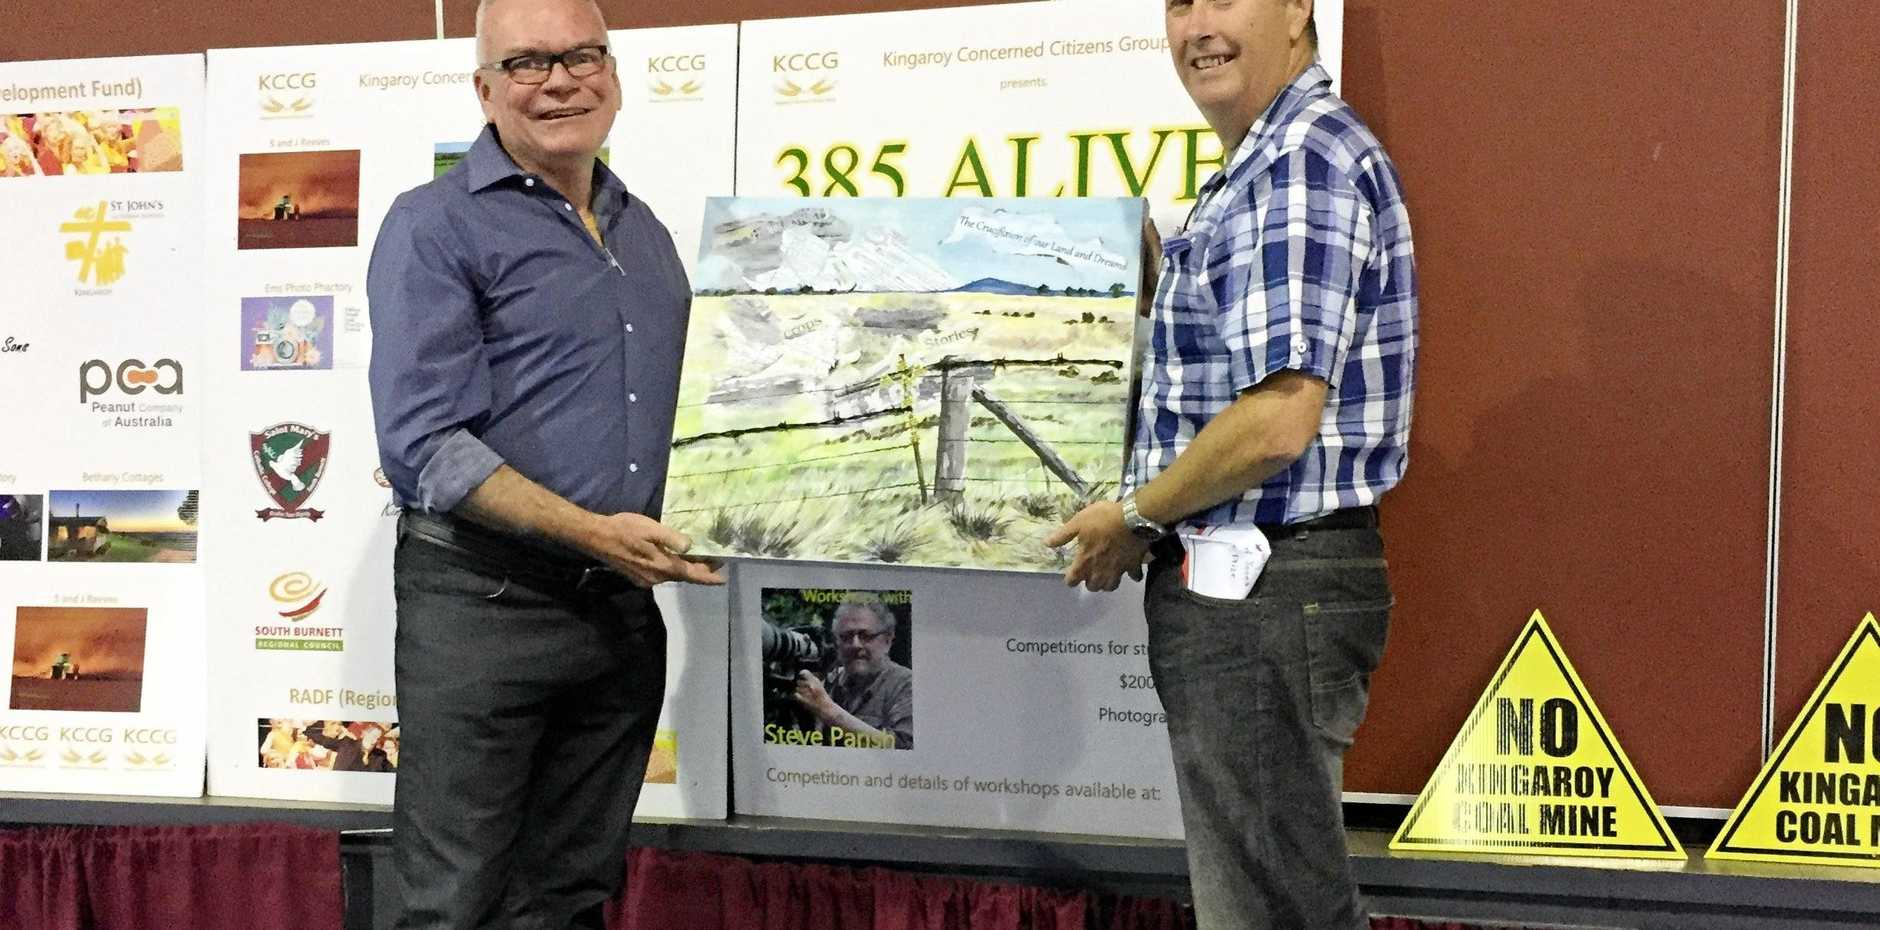 Daryll Jones, pictured with judge Patrick Burns, won the painting award at the 385 Alive competition.